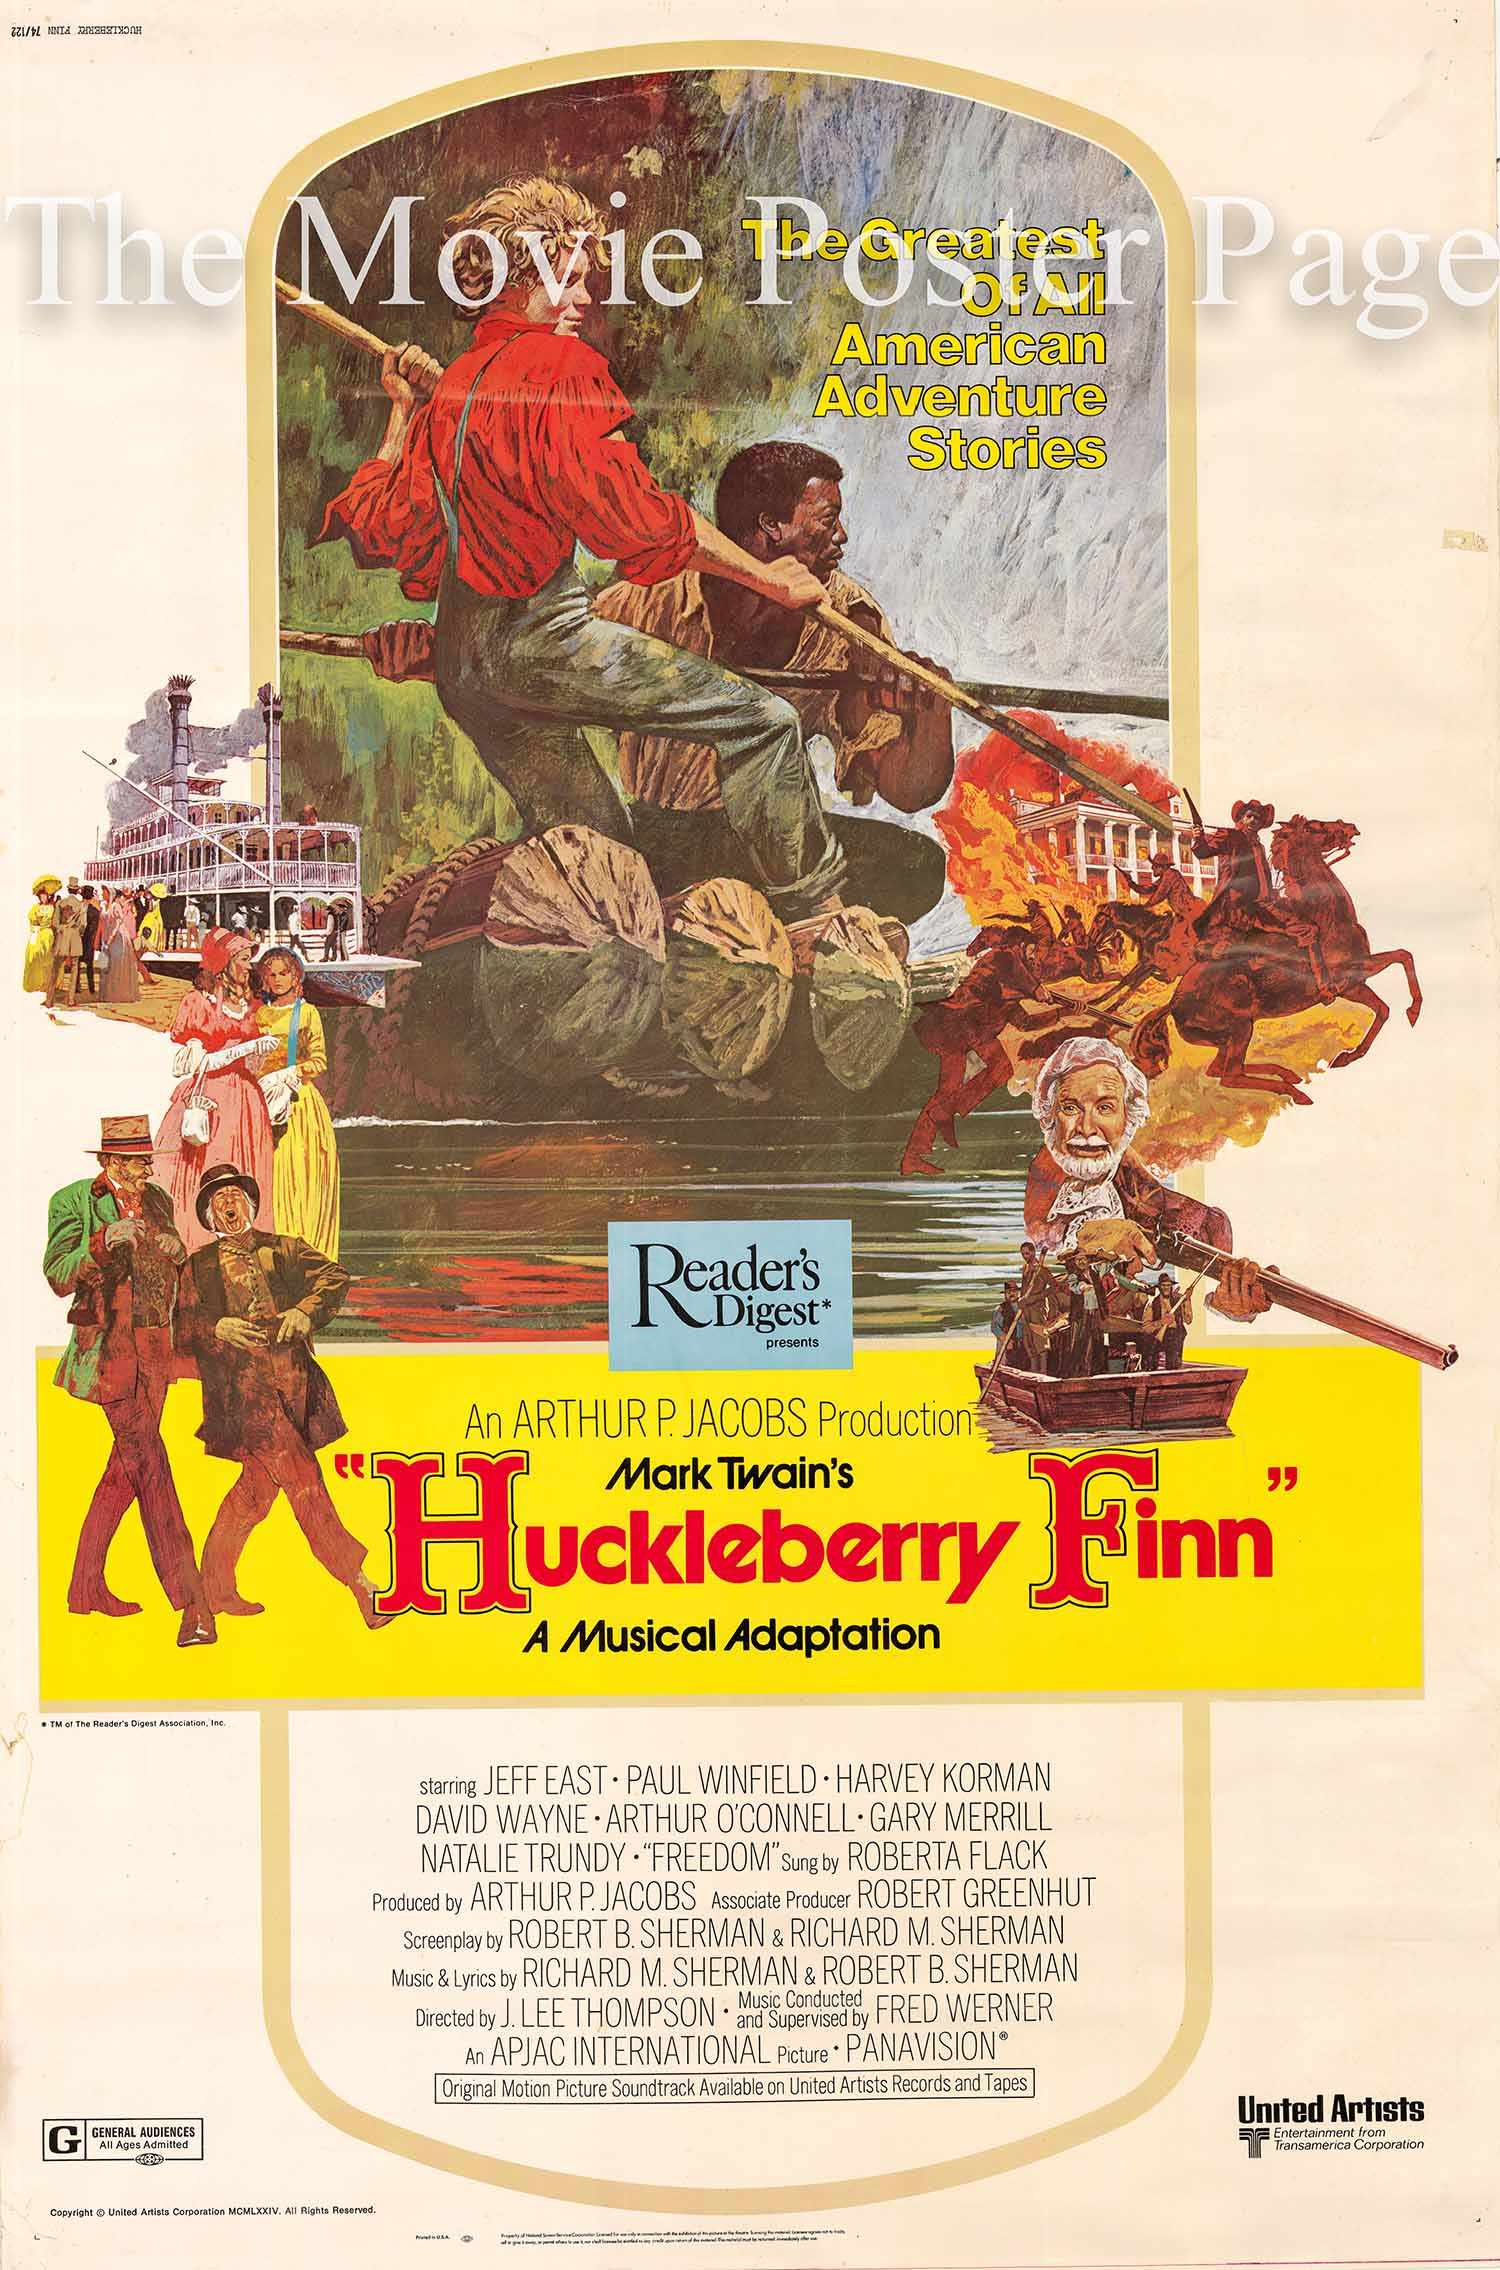 Pictured is a US 40x60 promotional poster for the 1974 J. Lee Thompson film Huckleberry Finn starring Jeff East.